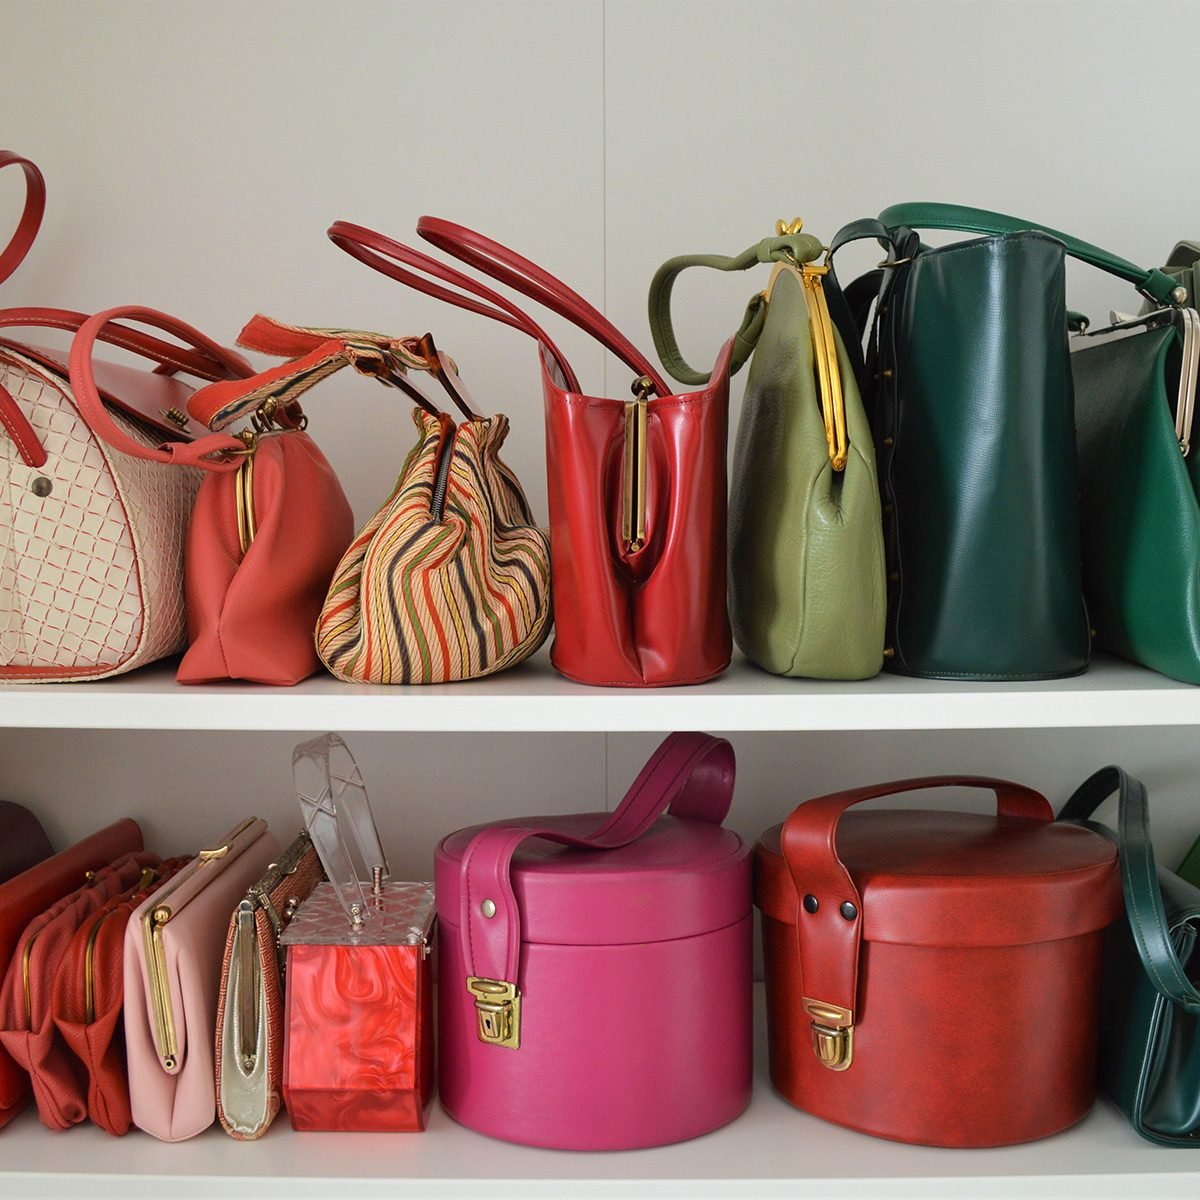 Various purses of all colors on a shelf